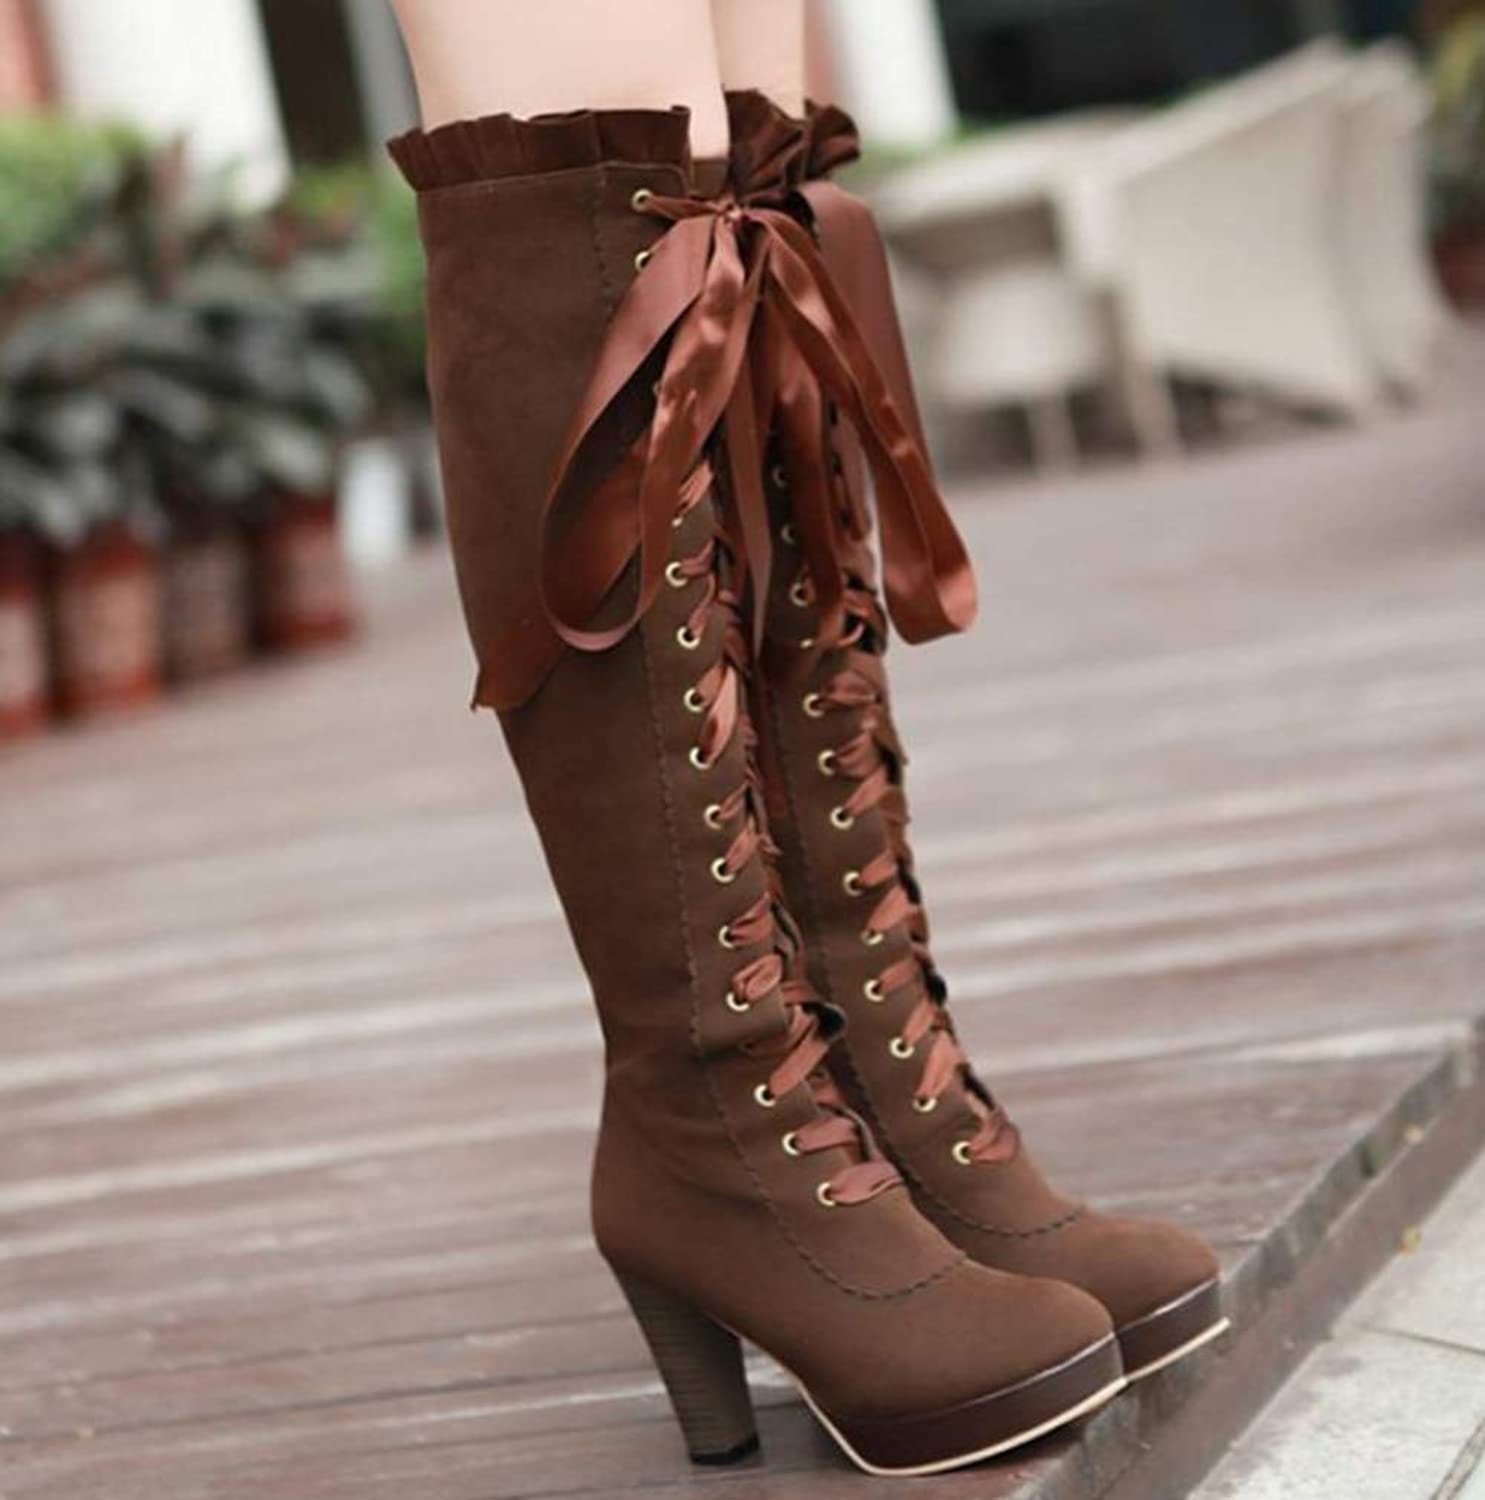 Shiney Women's High-Heeled Martin Boots High-Boots Cashmere Round Head Autumn and Winter